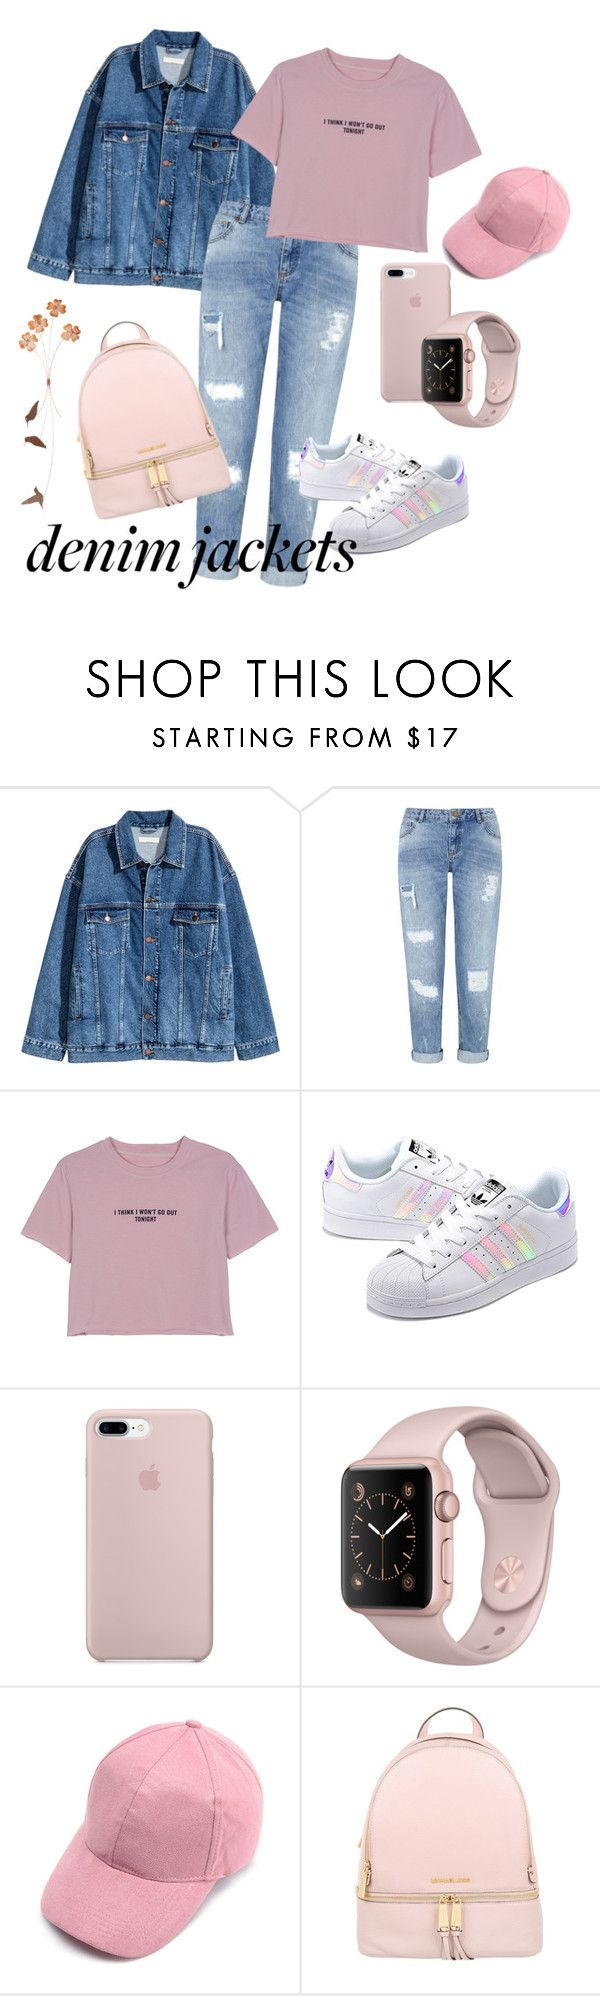 """Denim Jacket"" by topovayatyan ❤ liked on Polyvore featuring Miss Selfridge, WithChic, adidas Originals and MICHAEL Michael Kors"